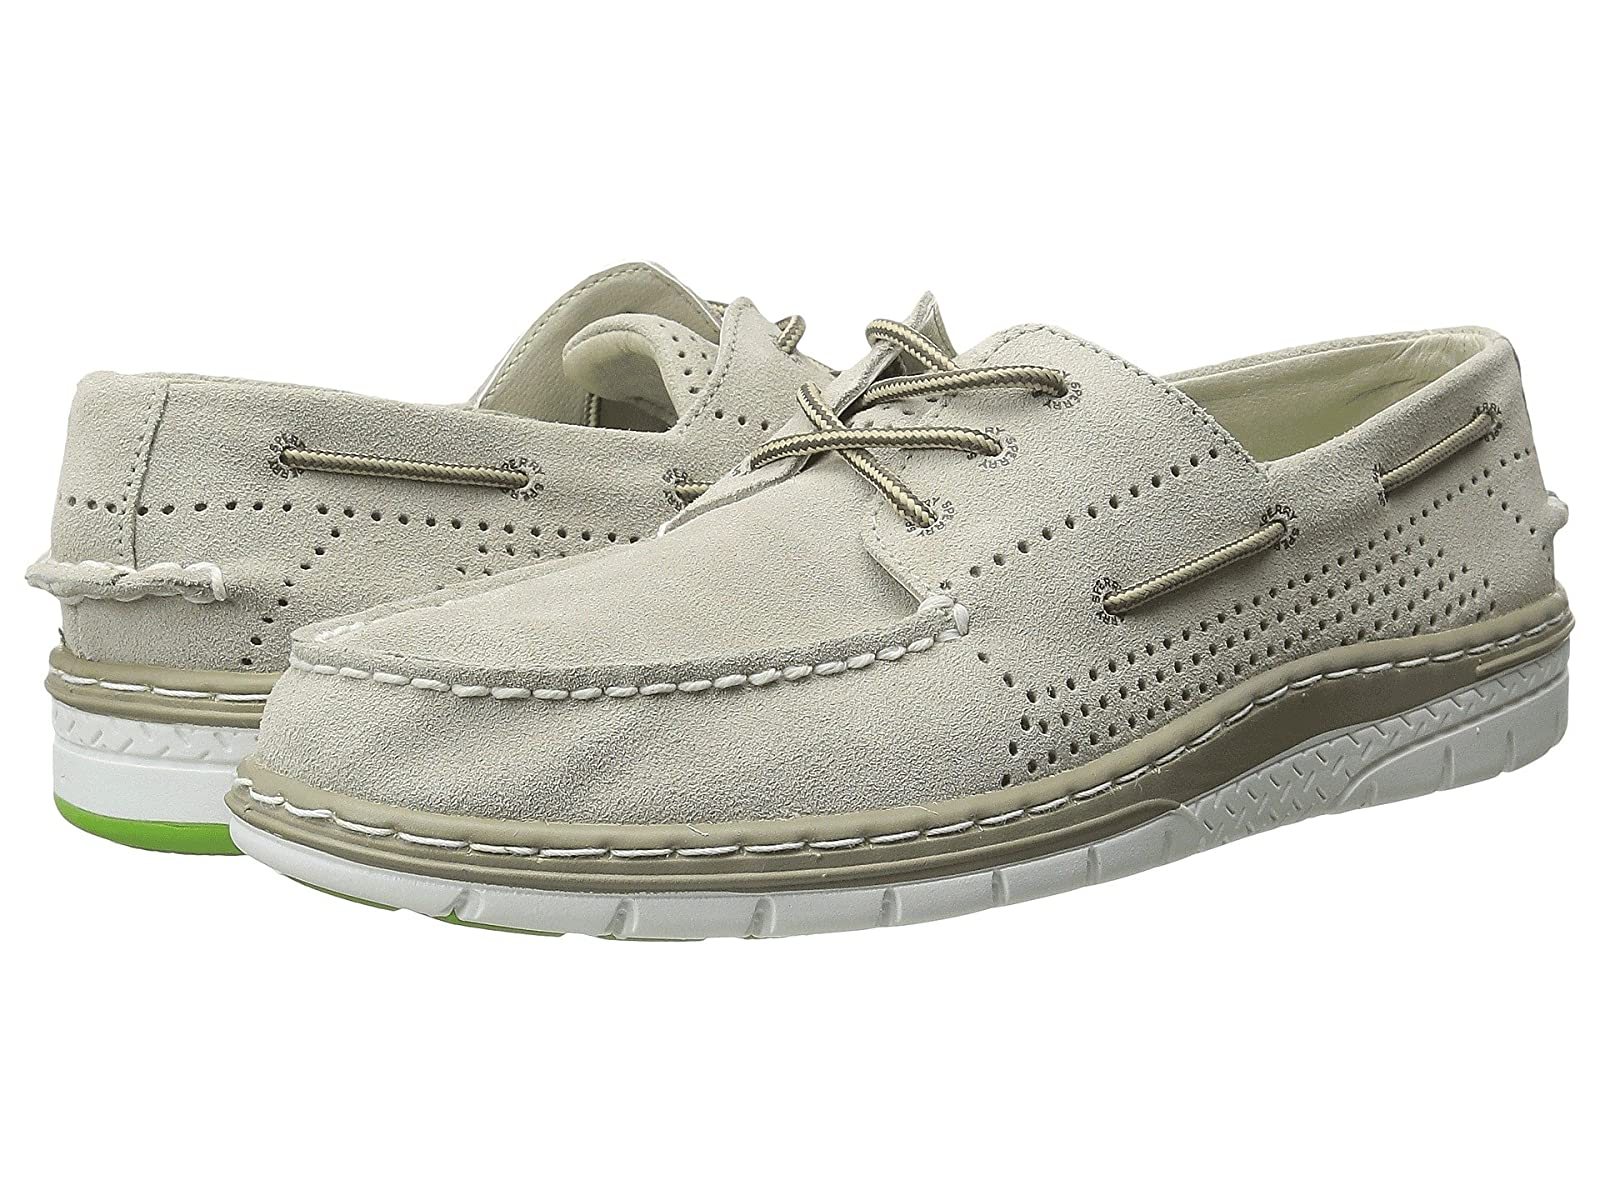 Sperry Billfish Ultralite Perf SuedeCheap and distinctive eye-catching shoes